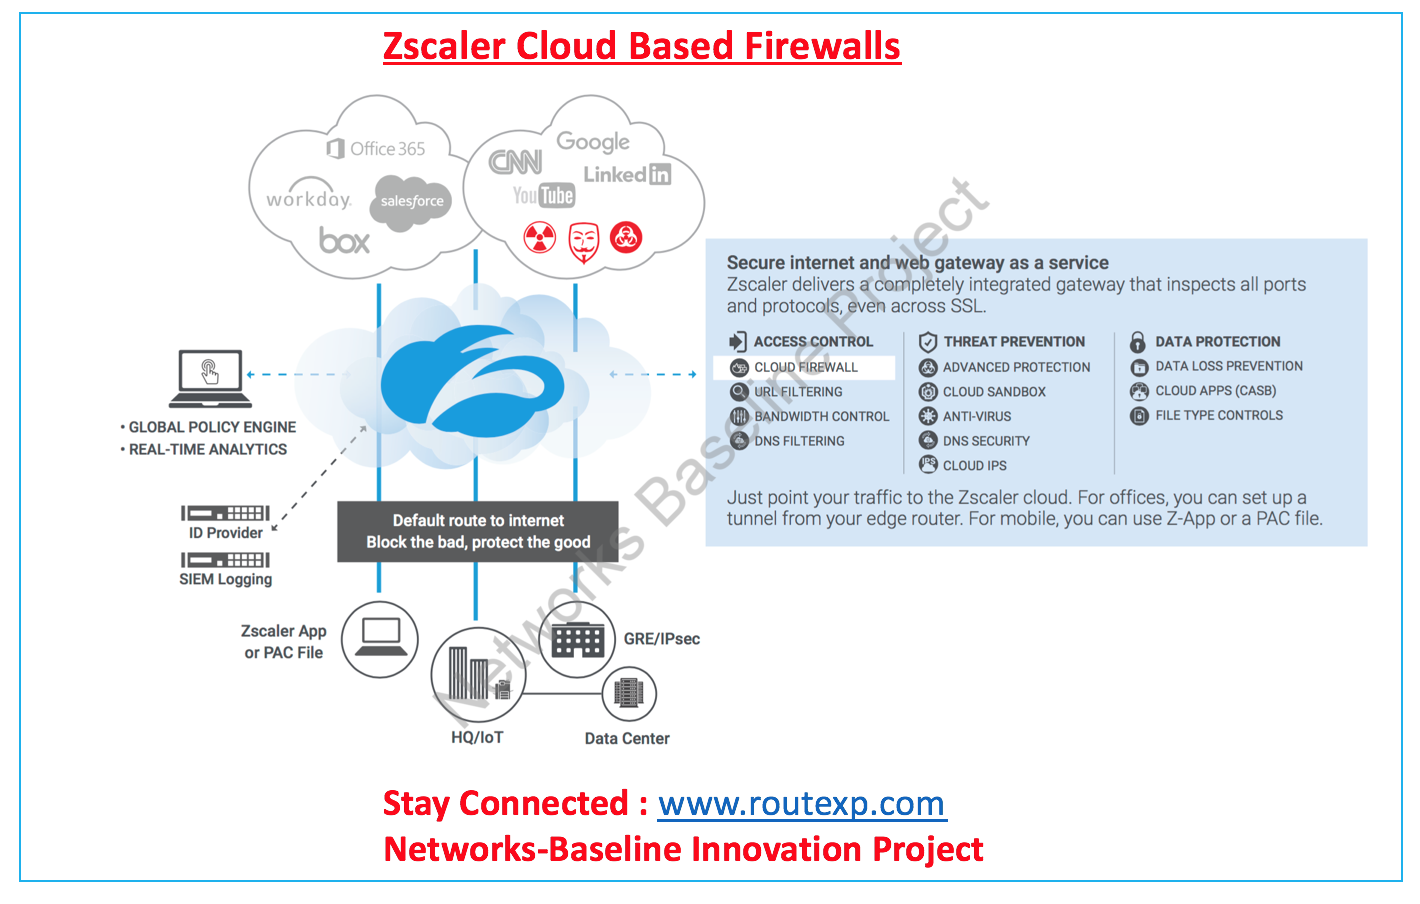 Cybersecurity Introduction To Zscaler Cloud Based Firewalls Route Xp Private Network Services